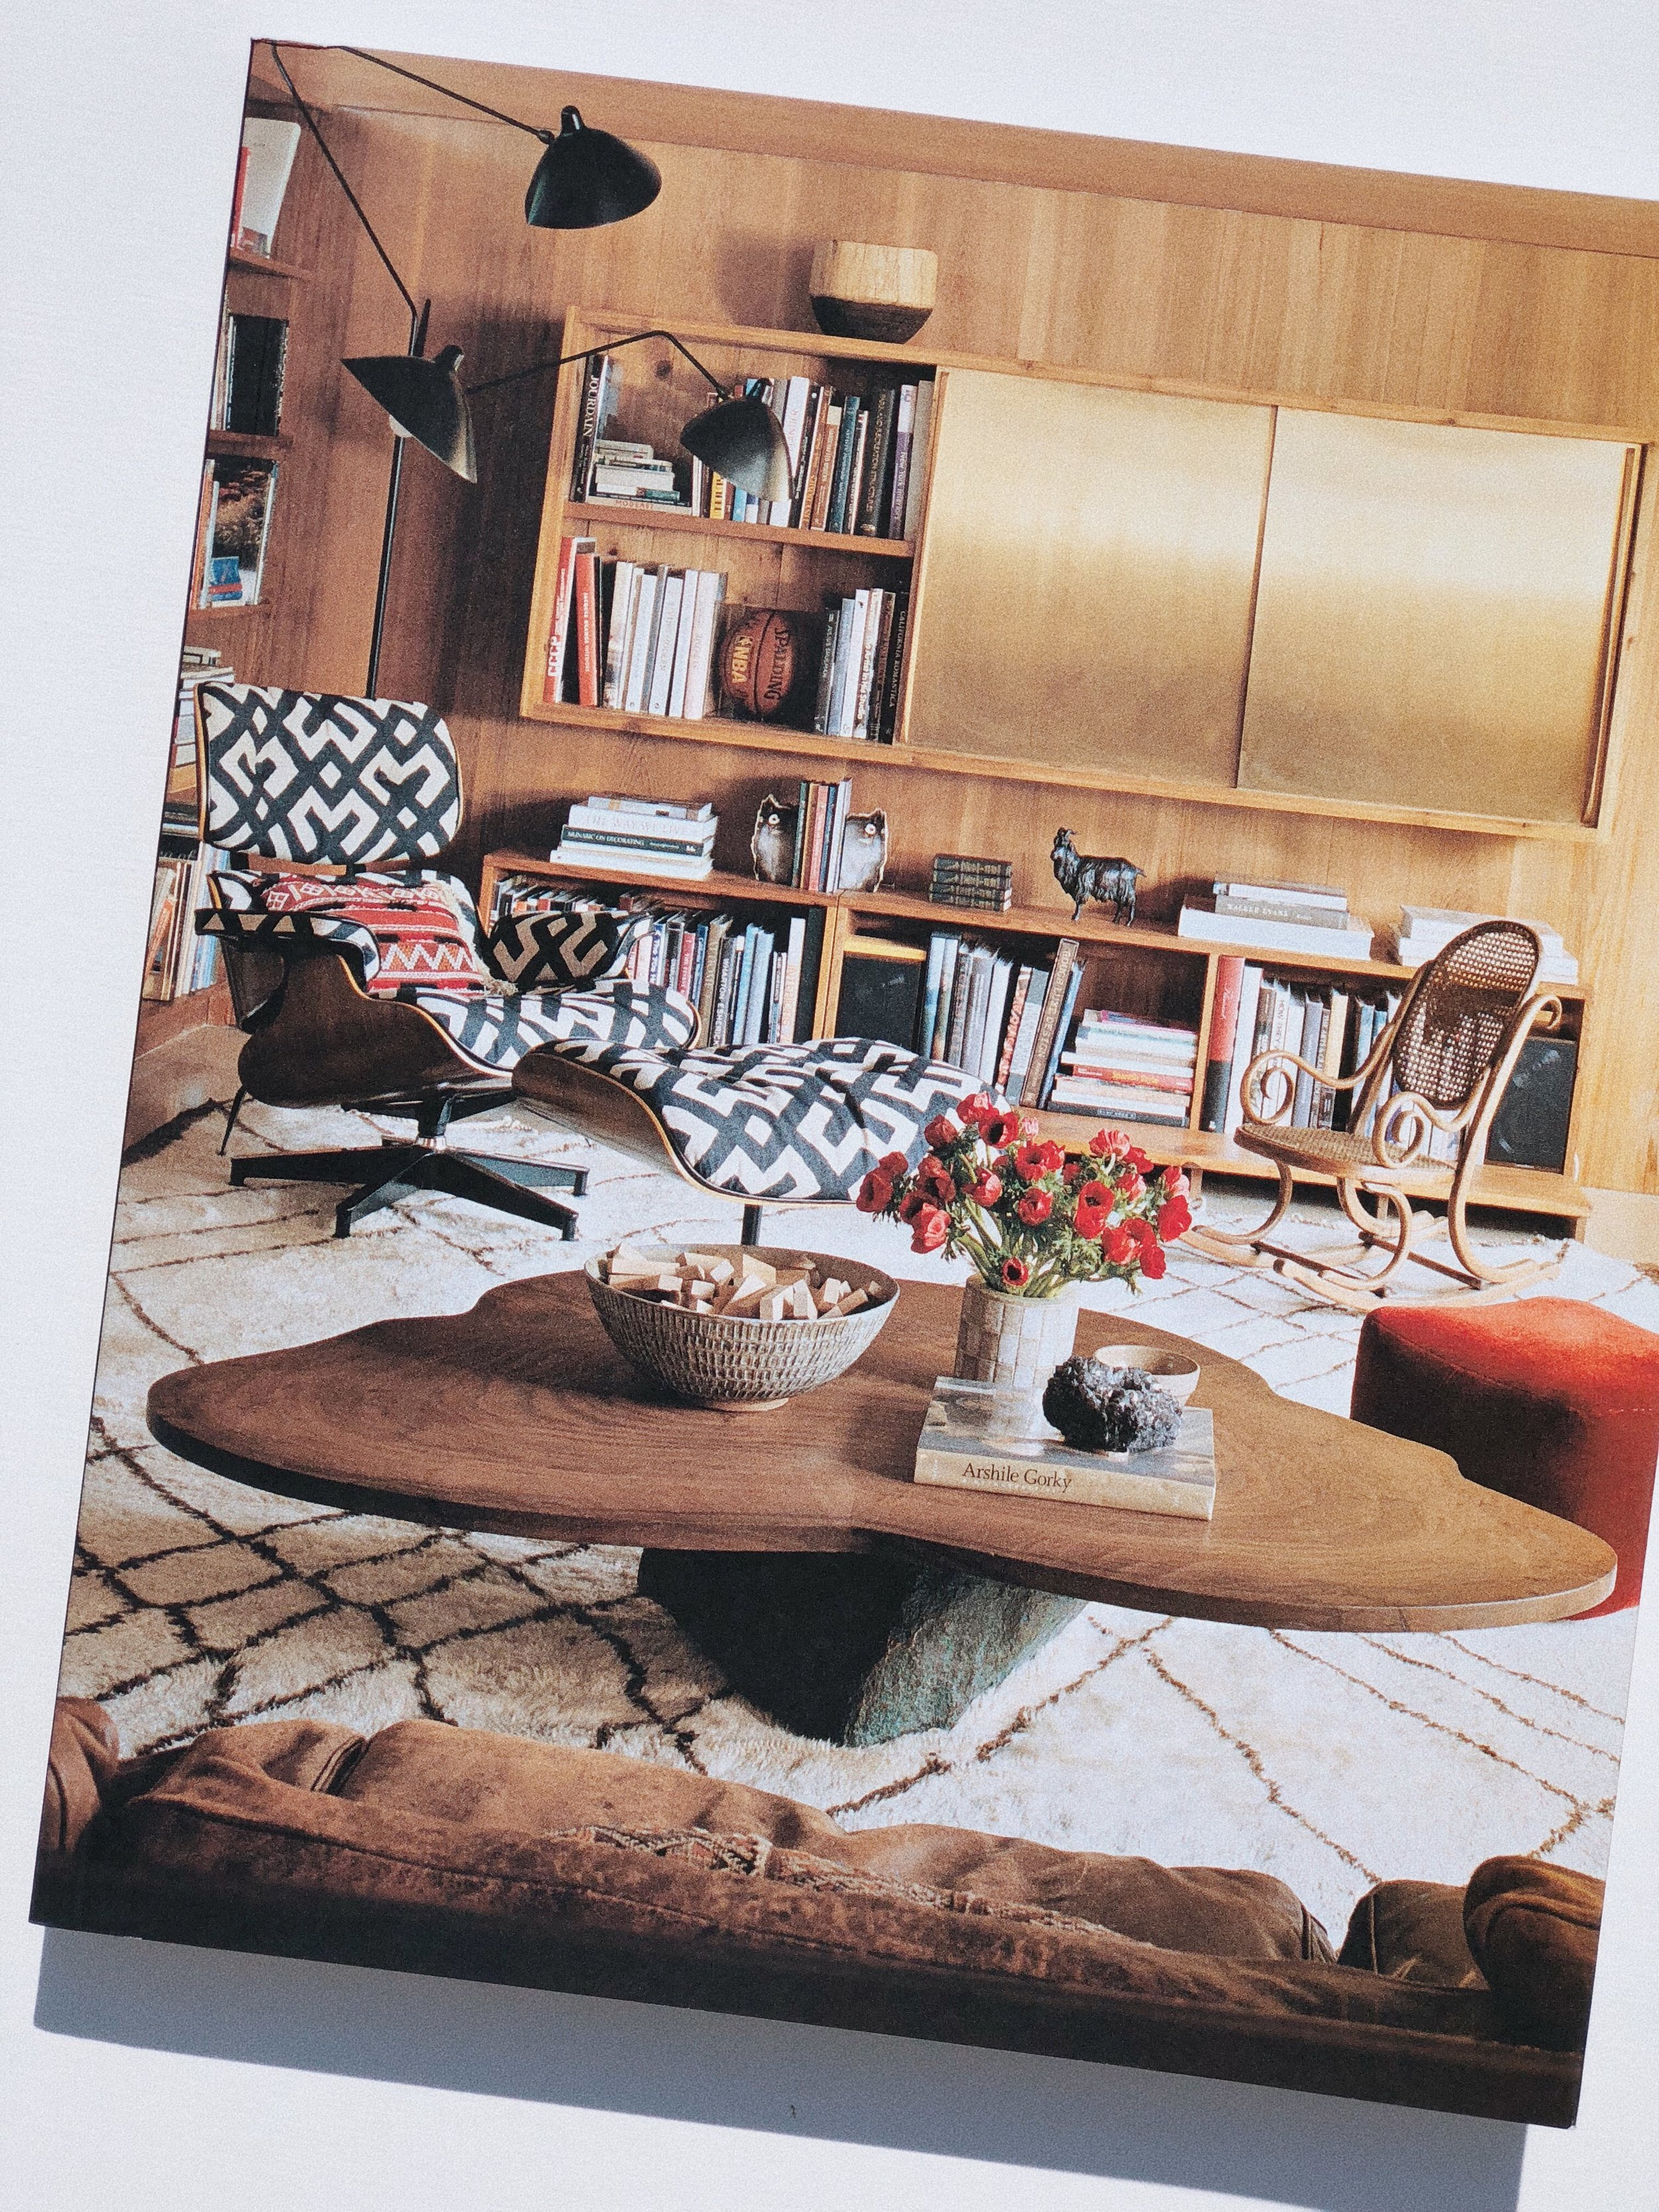 COMMUNE   IS ONE OF MY FAVORITE INTERIOR BOOKS. IT DISPLAYS AMAZING CALIFORNIA INTERIORS, WHICH ARE INDIVIDUAL AND DON'T SEEM TOO TRENDY, I LOVE THAT AND IT'S ONE THAT I OPEN AGAIN AND AGAIN IF I NEED SOME INSPO. -J